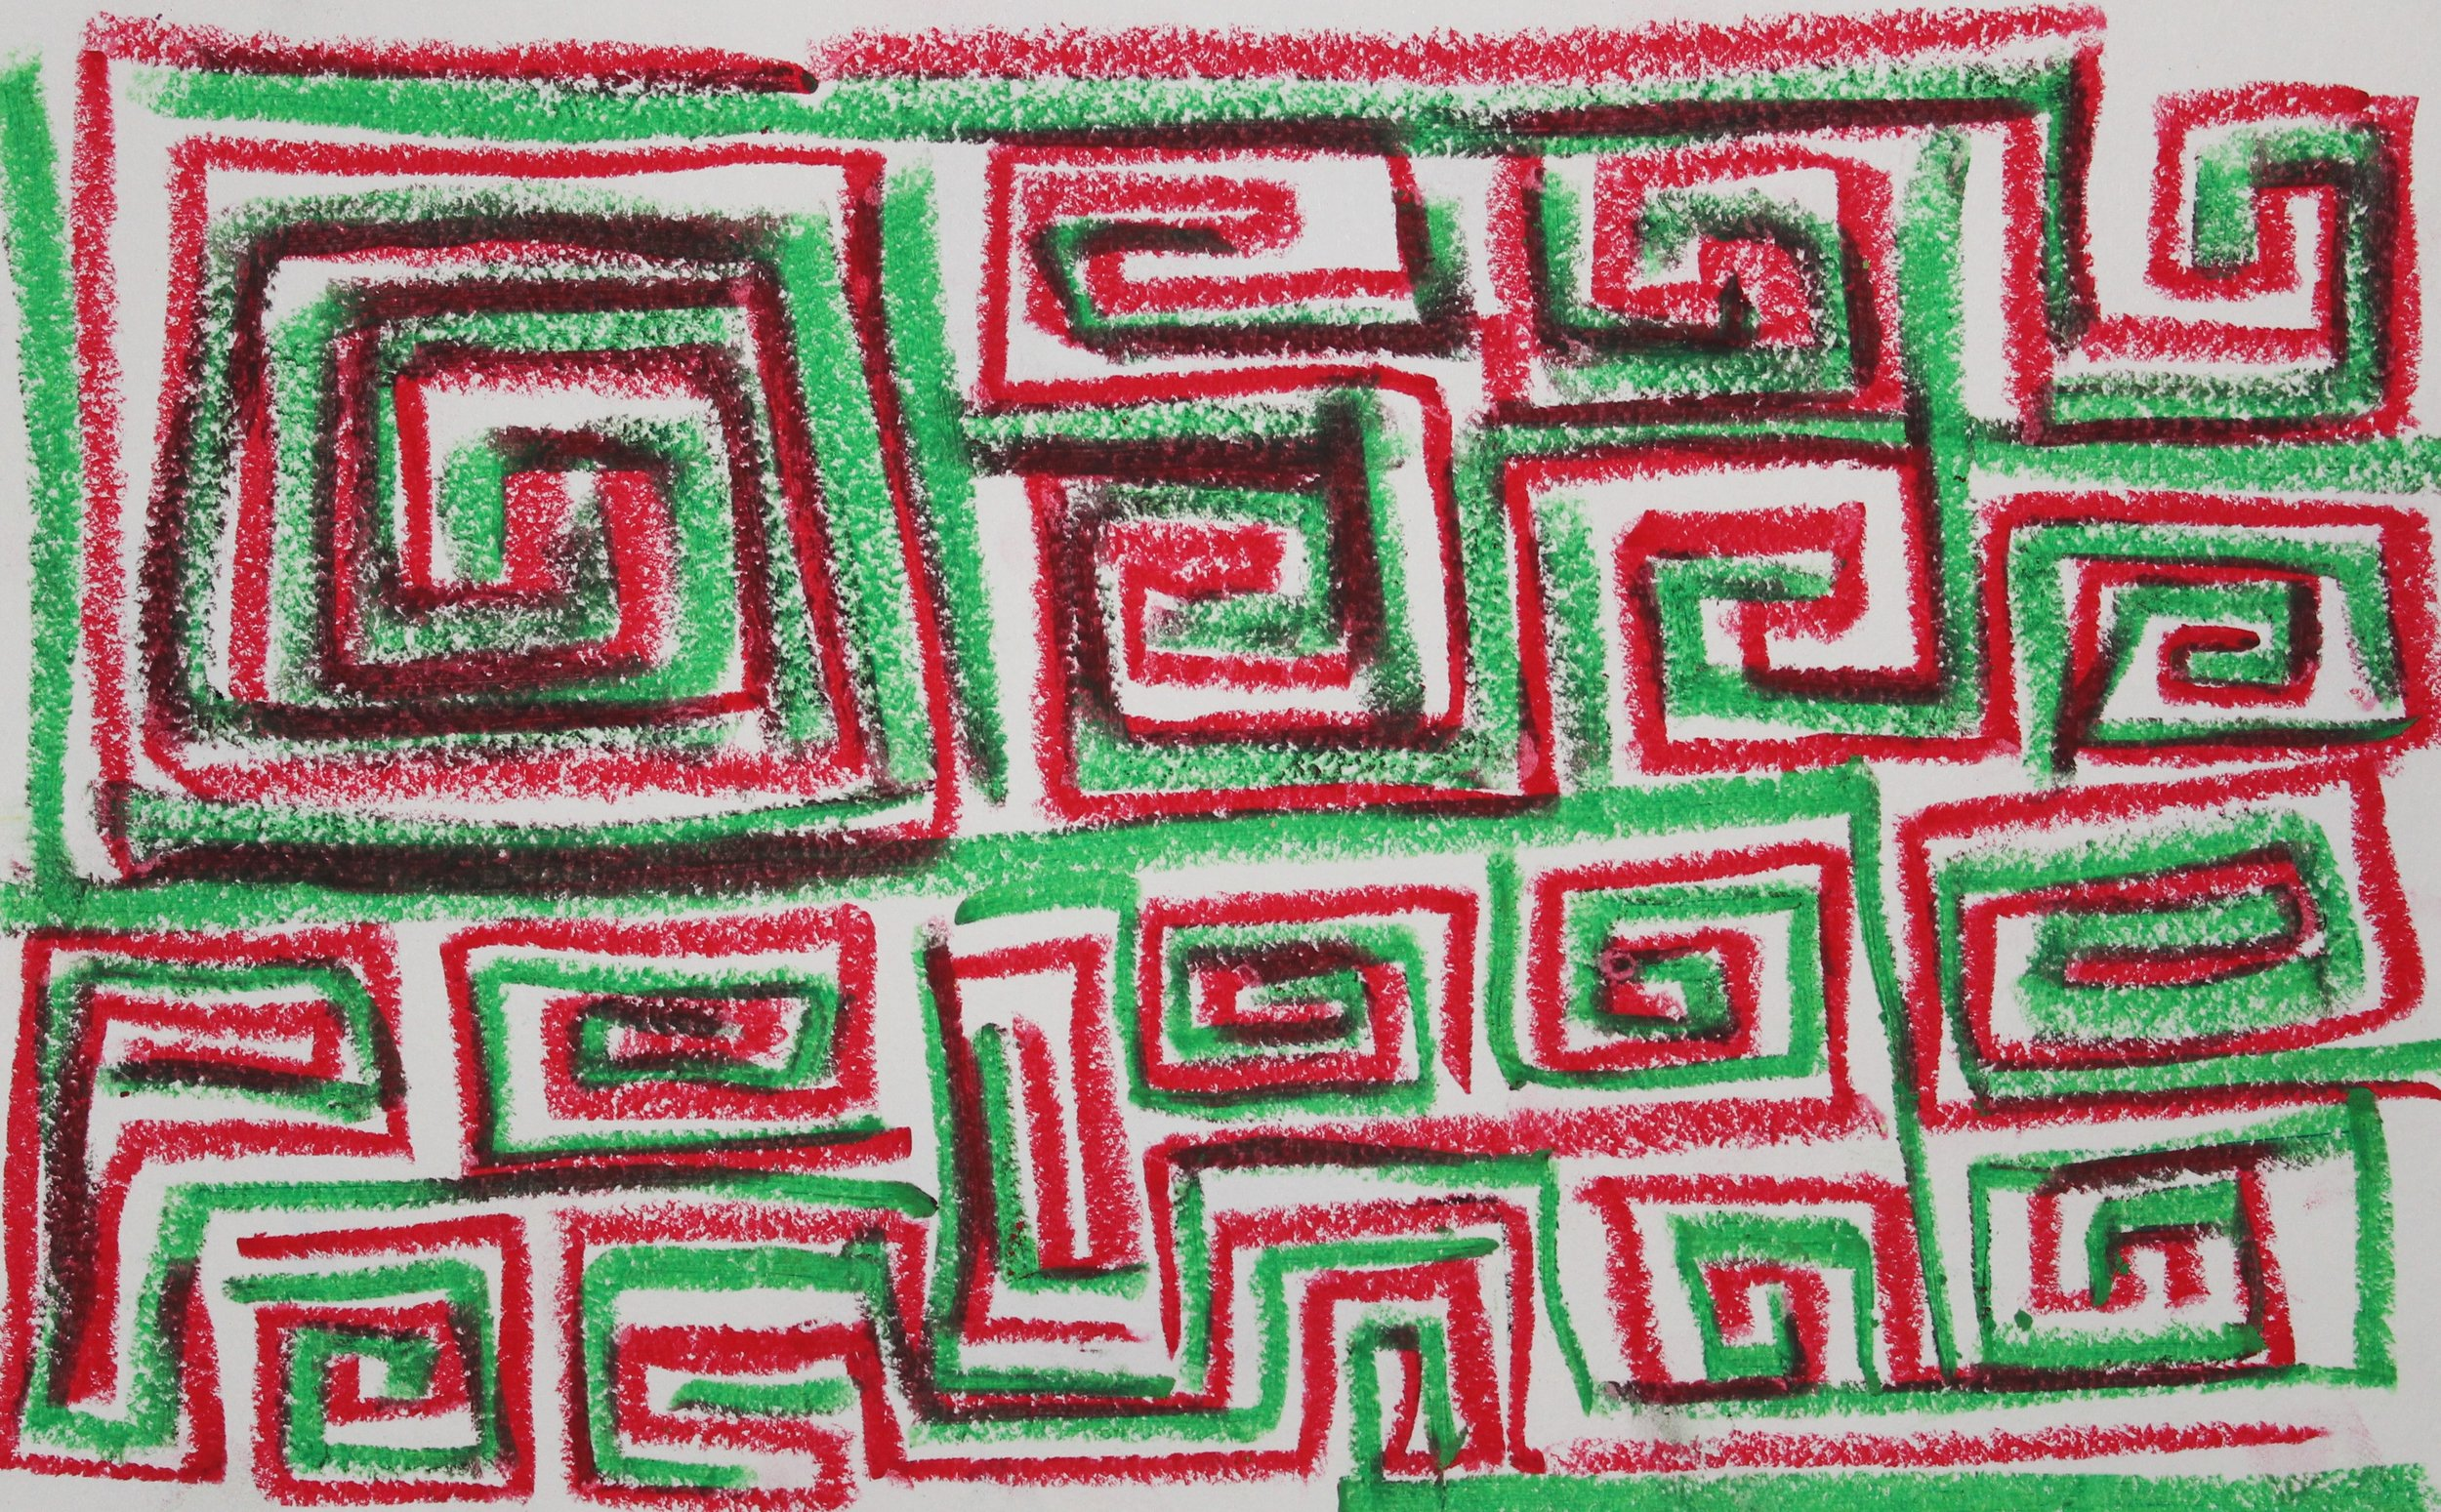 Red on Green, 2018    Oil Pastel on Paper